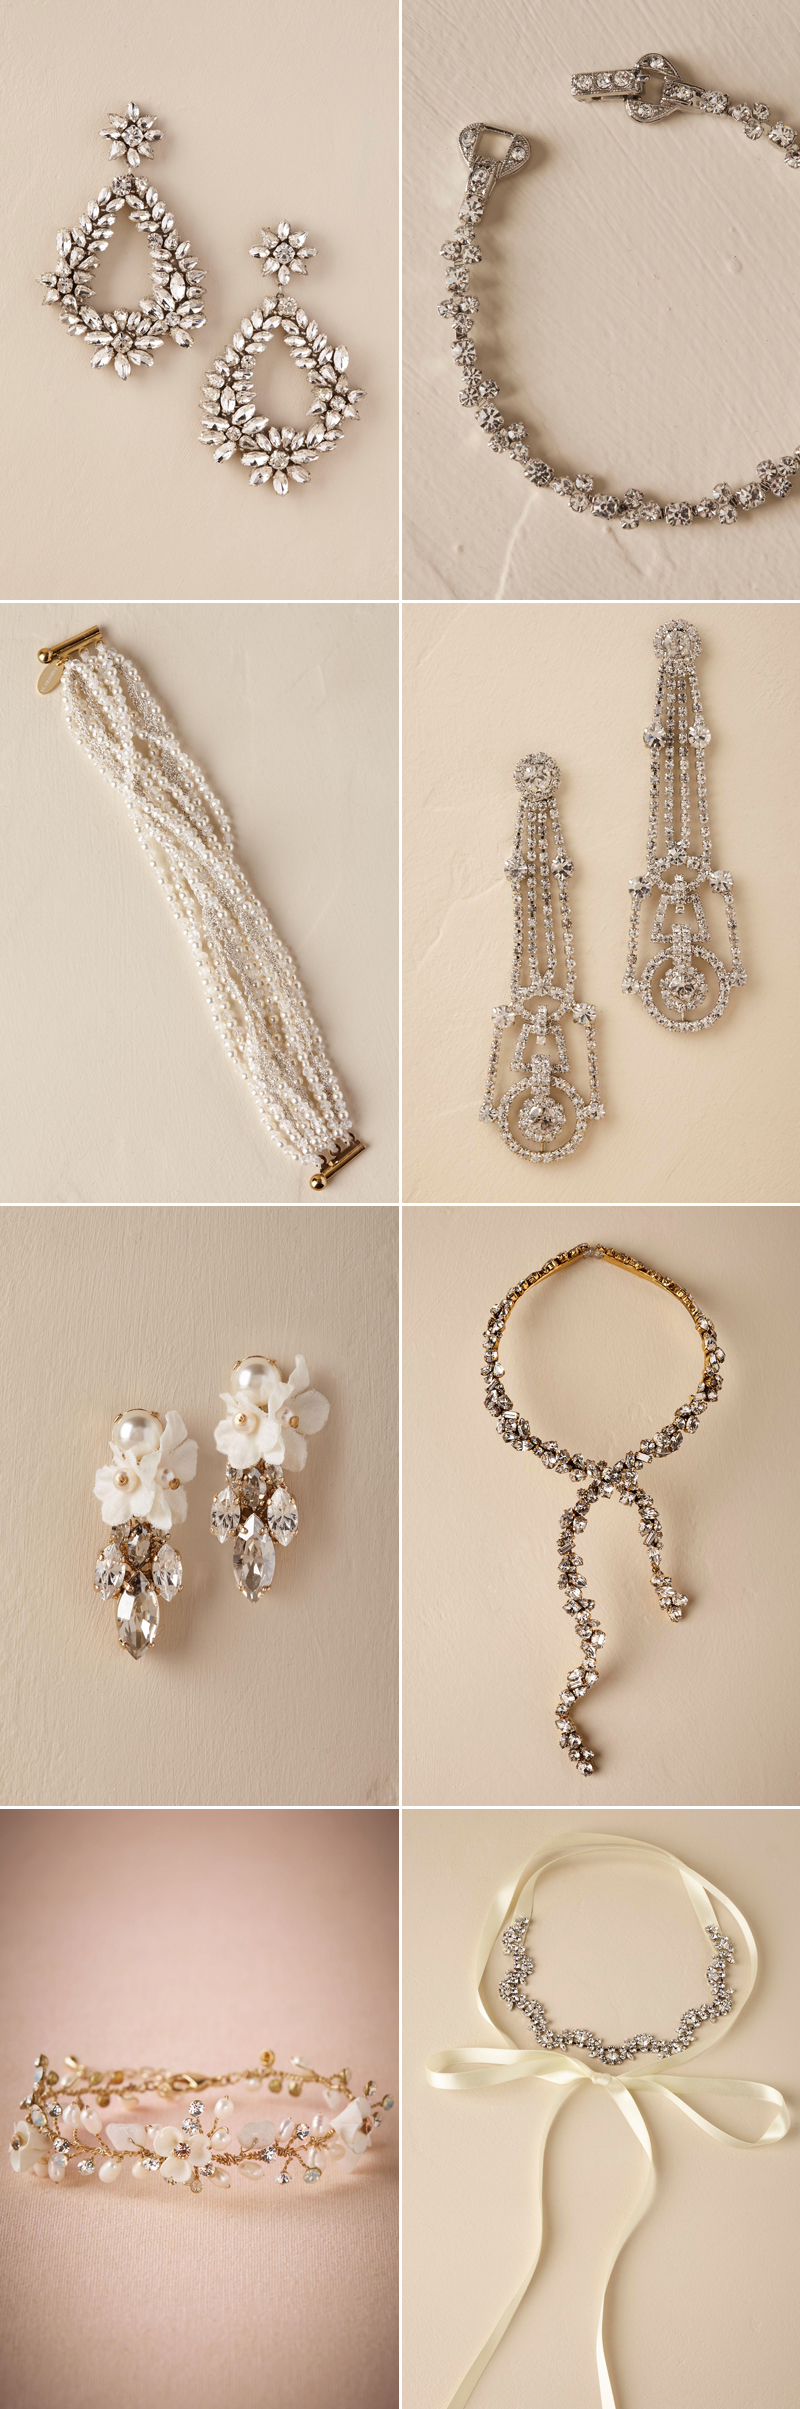 bridaljewelry02-BHLDN